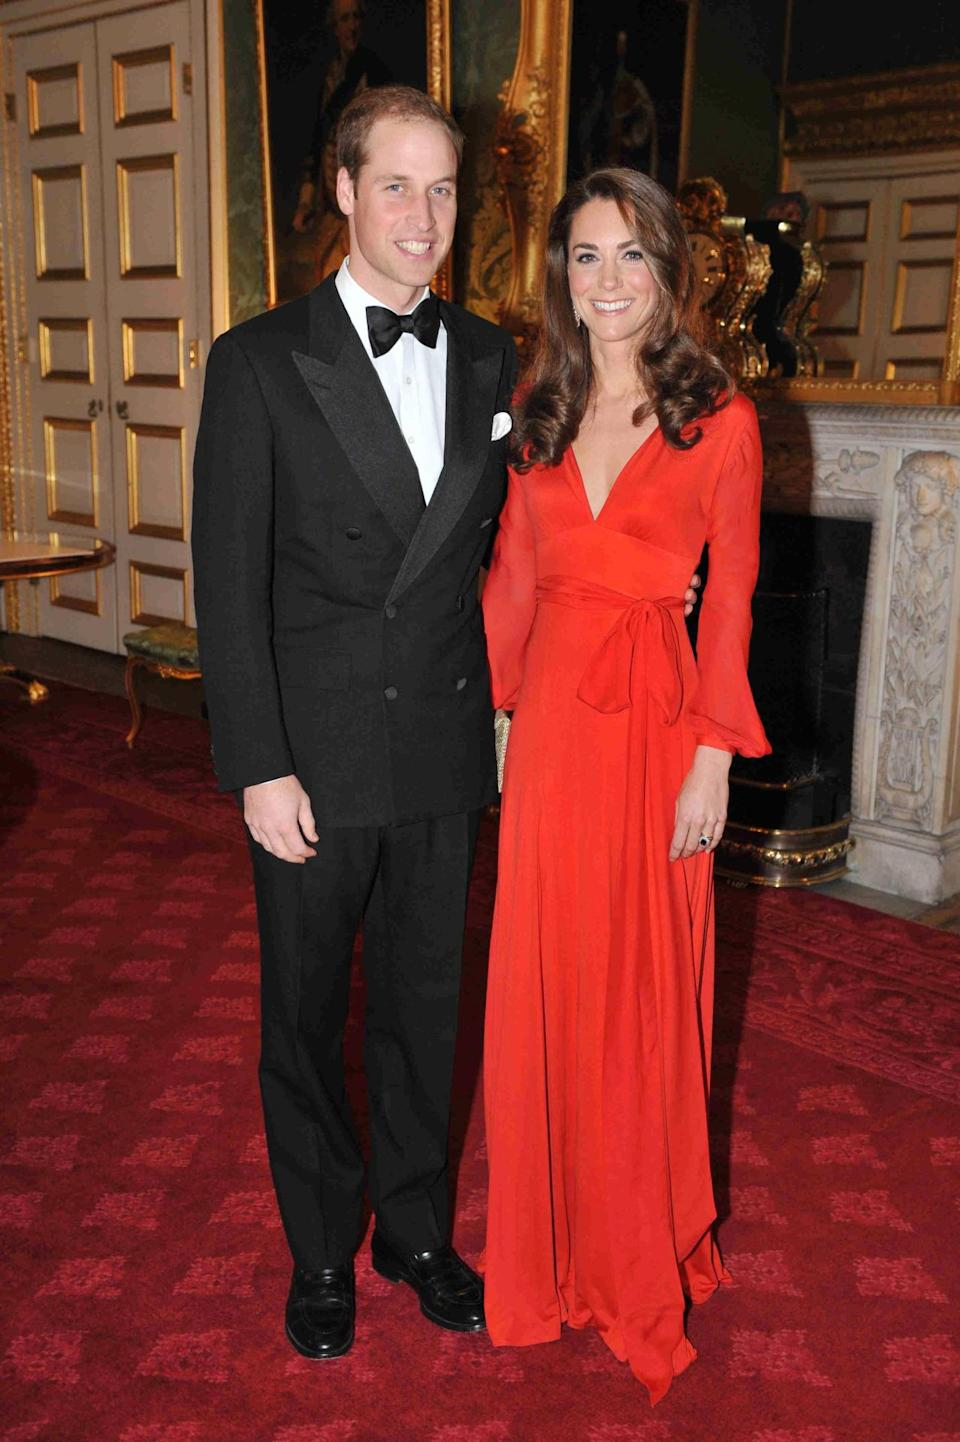 <p>Kate wore a vibrant red wrap dress by Beulah London for a fundraising gala, accessorising with a gold Wilbur and Gussie clutch.</p><p><i>[Photo: PA]</i></p>